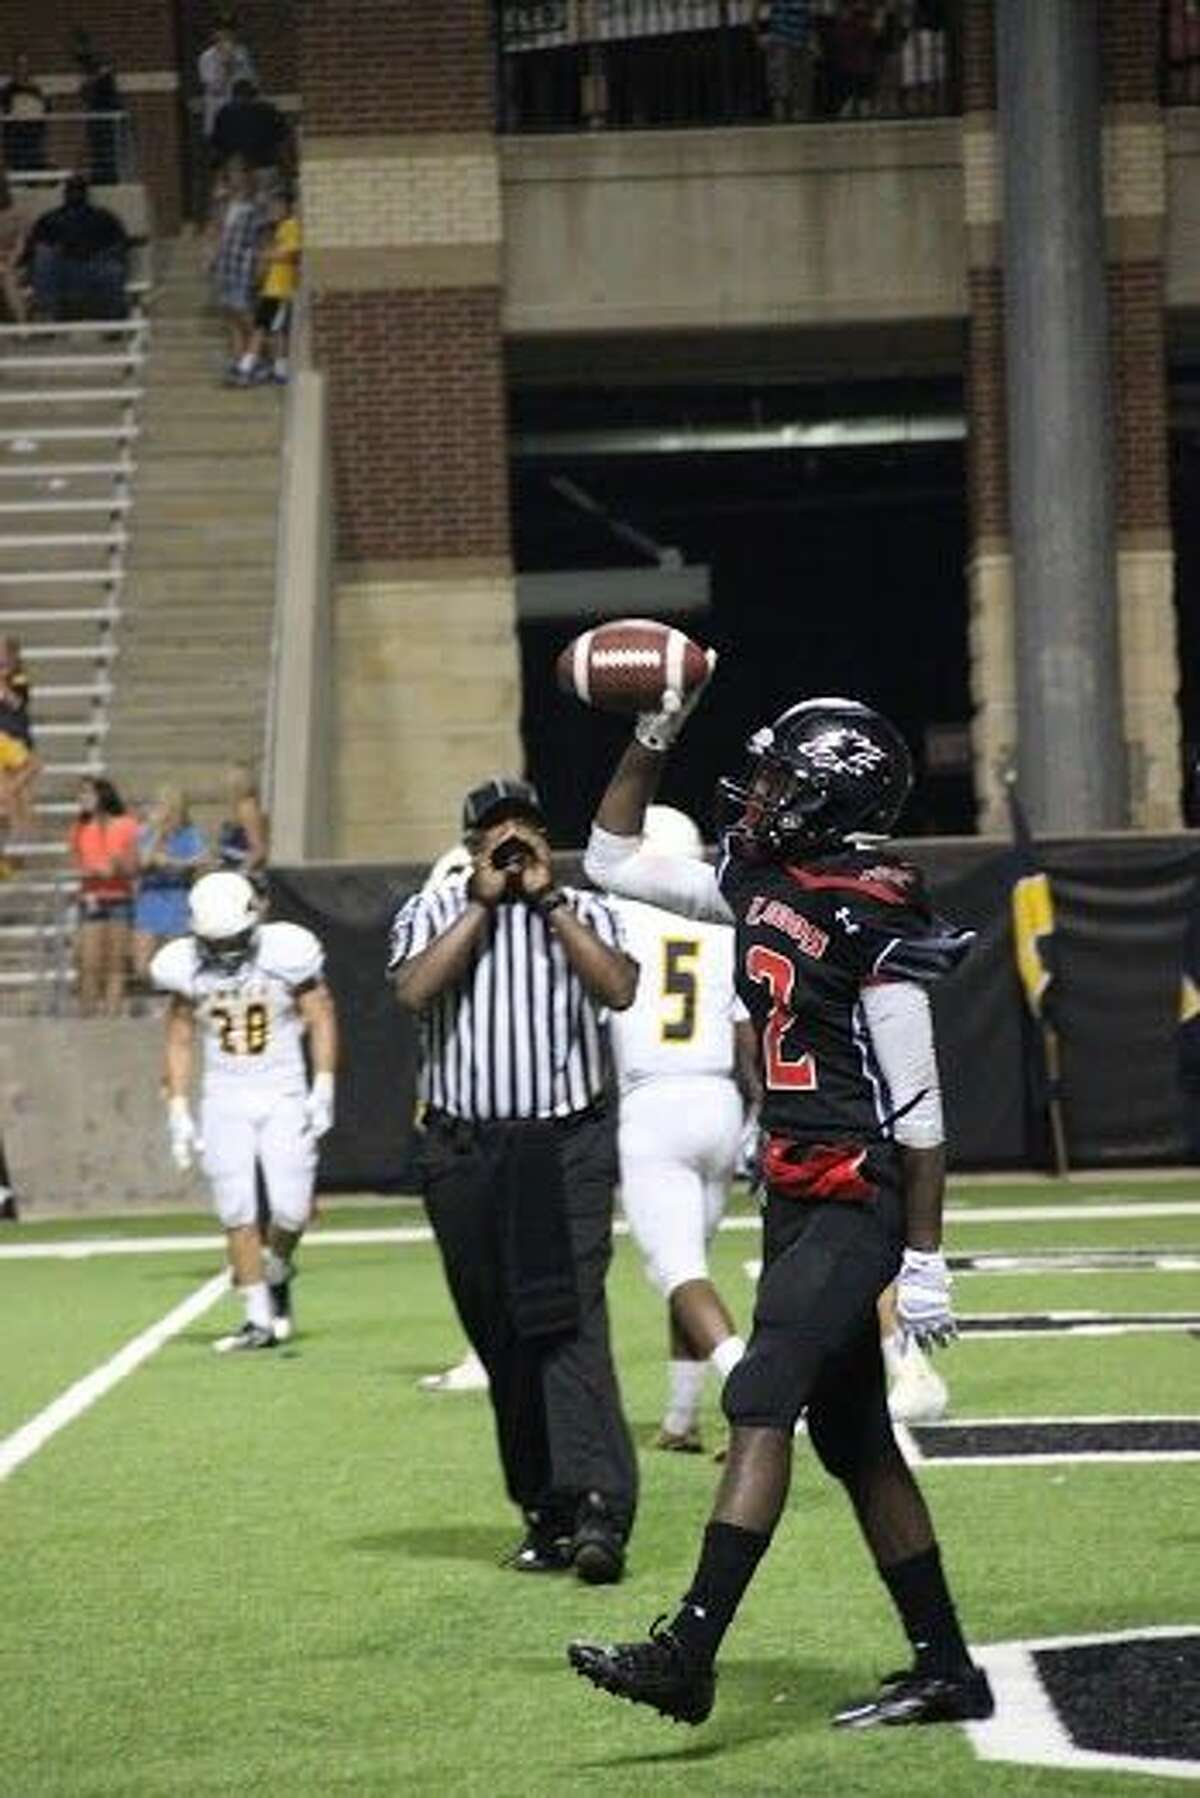 Langham Creek's Quartney Davis caught a 19-yard touchdown pass as time expired in a 42-39 win over Cy Ranch on Saturday at the Berry Center.